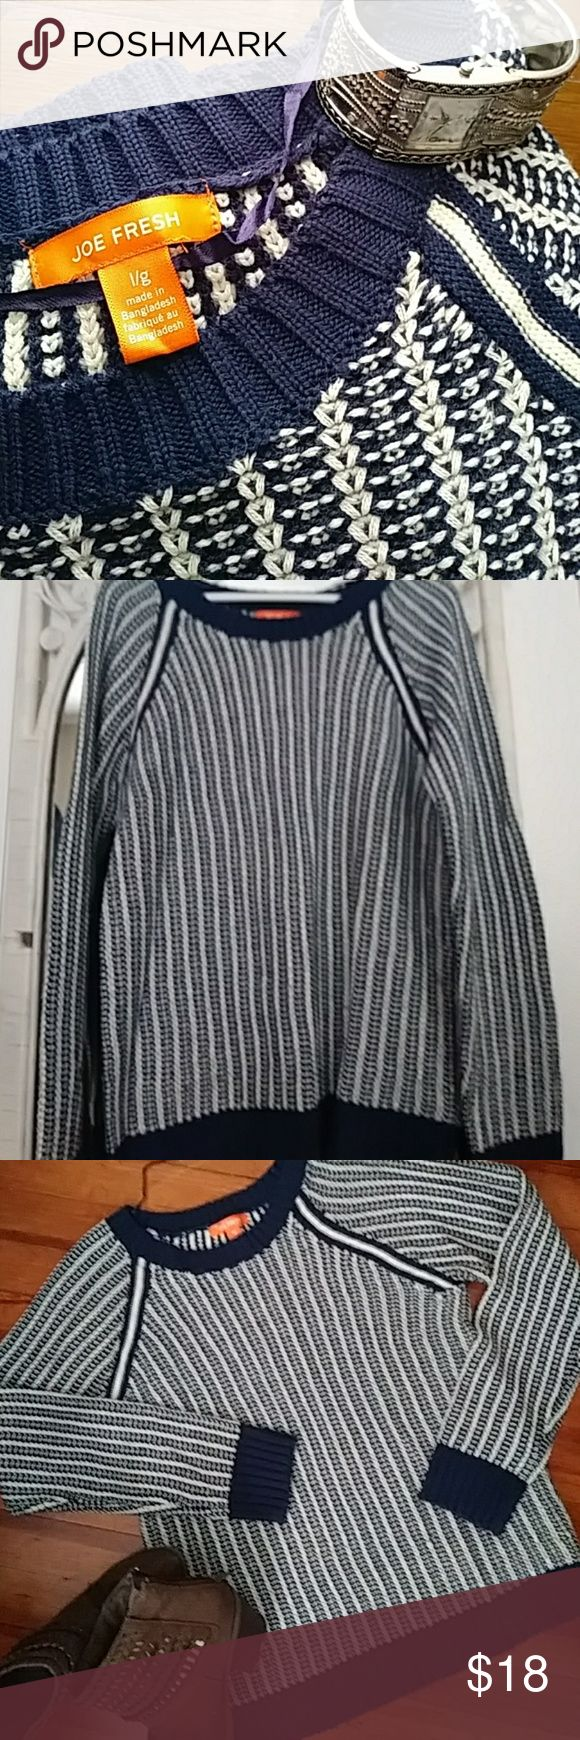 Joe Fresh...good looking navy and white sweater Are you ready for the cold??. Grab this warm and cozy Joe Fresh sweater. Great navy and white woven pattern with solid navy collar and bands around wrists and bottom. Size large Joe Fresh Sweaters Crew & Scoop Necks